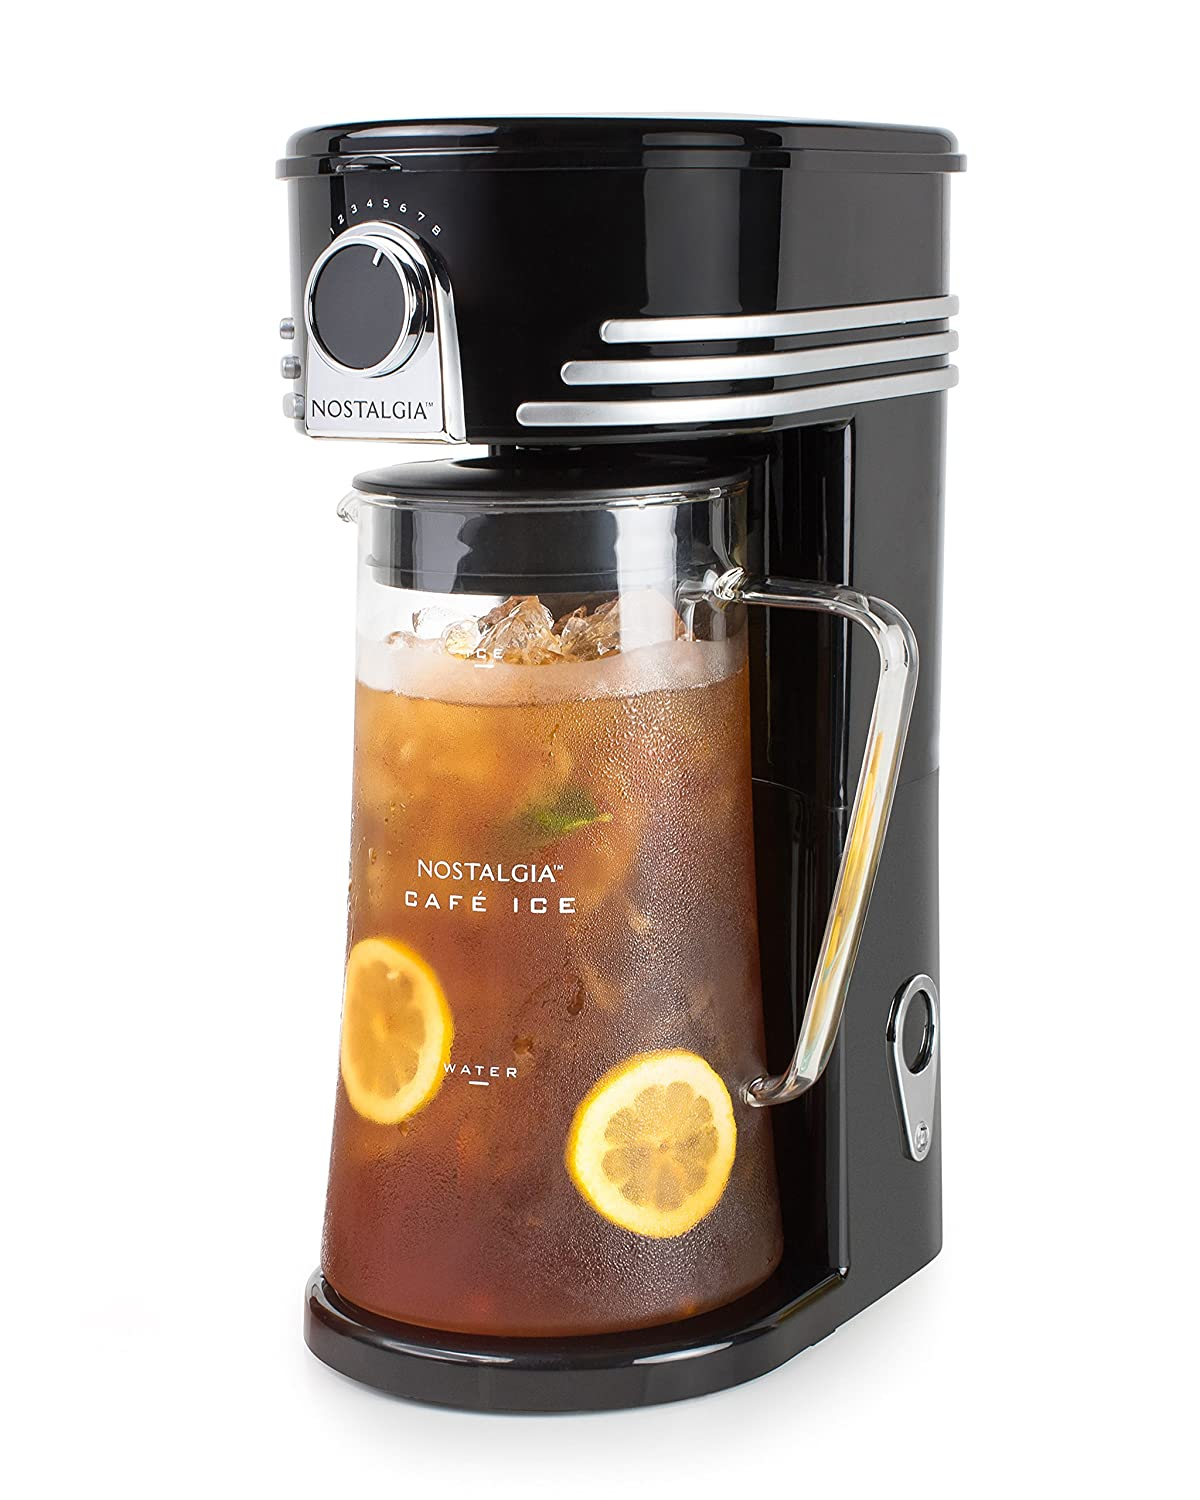 Nostalgia CI3BK Iced Coffee Maker and Tea Brewing System, Glass Pitcher, 3 quart Black